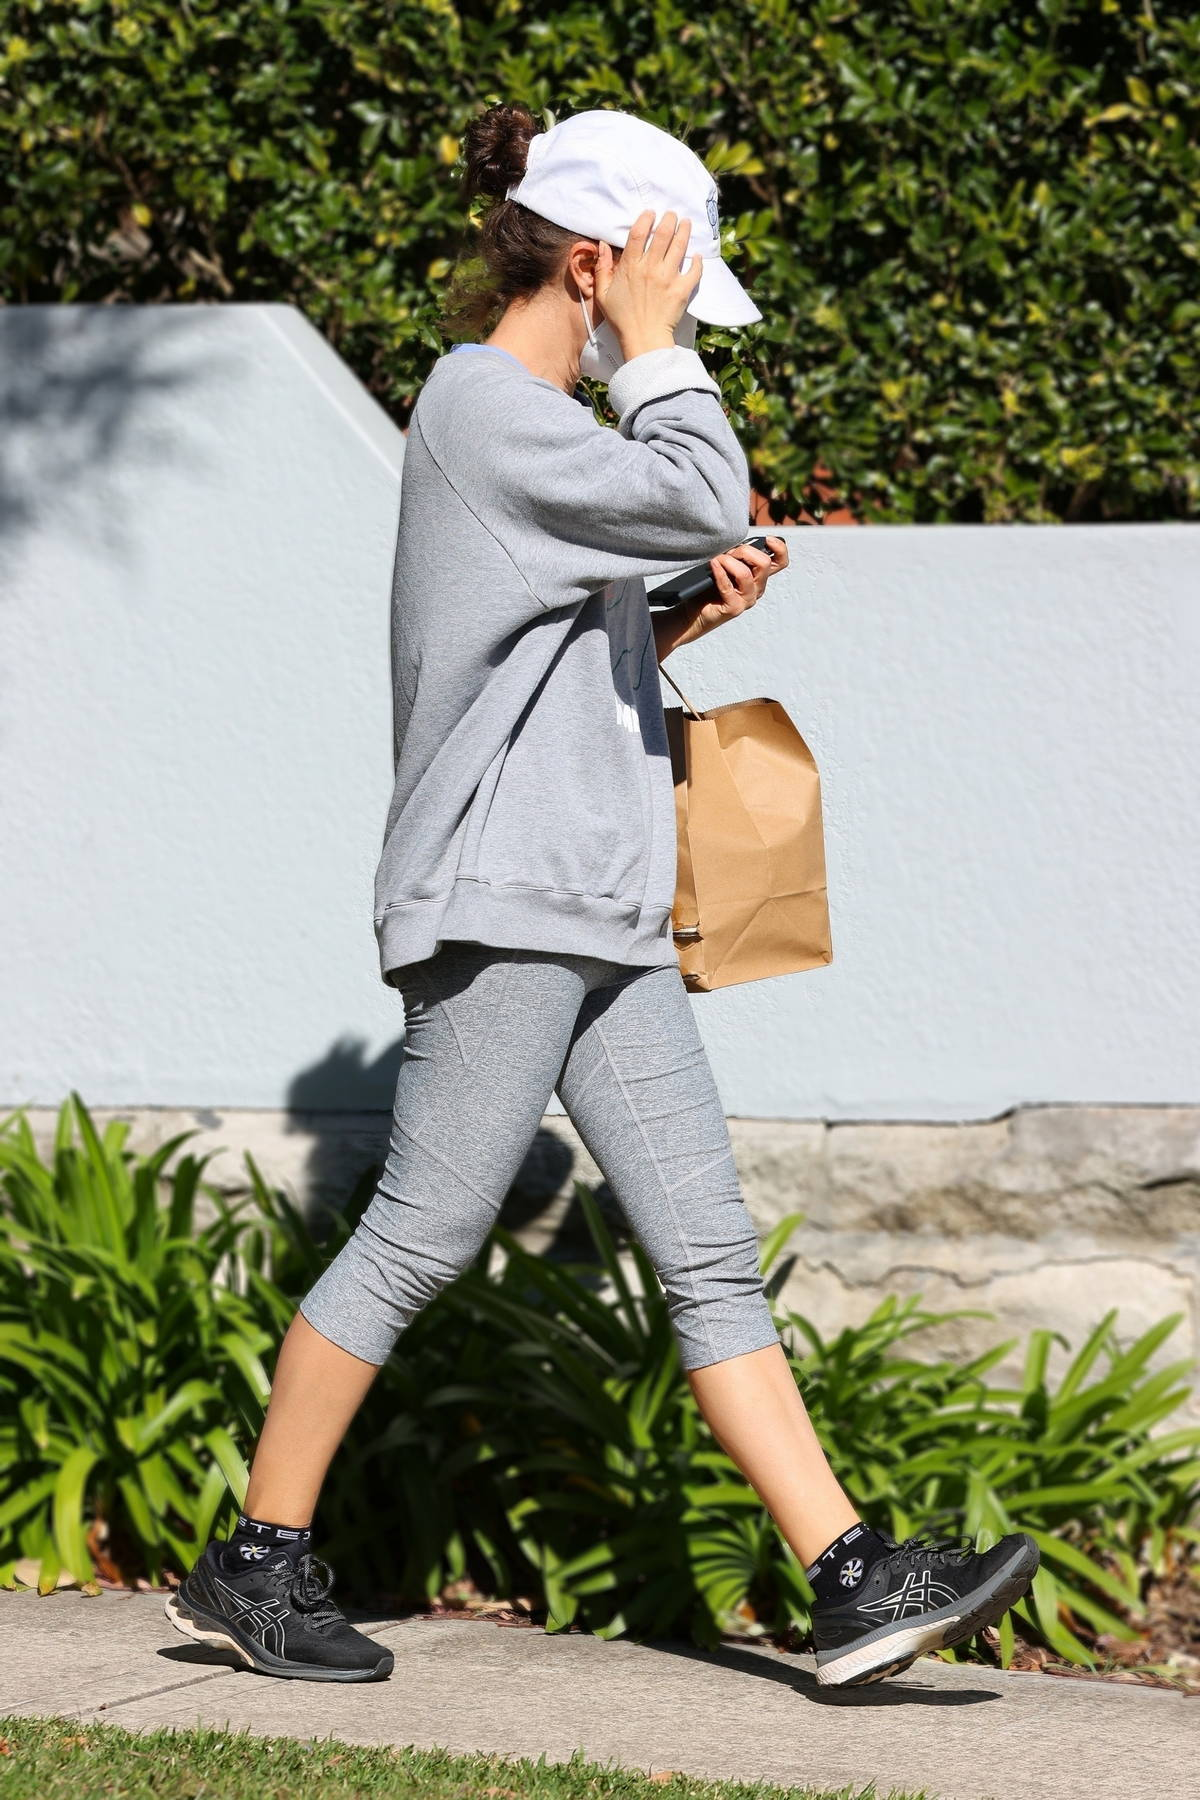 Natalie Portman dons a grey sweatshirt with matching leggings while out in Sydney, Australia